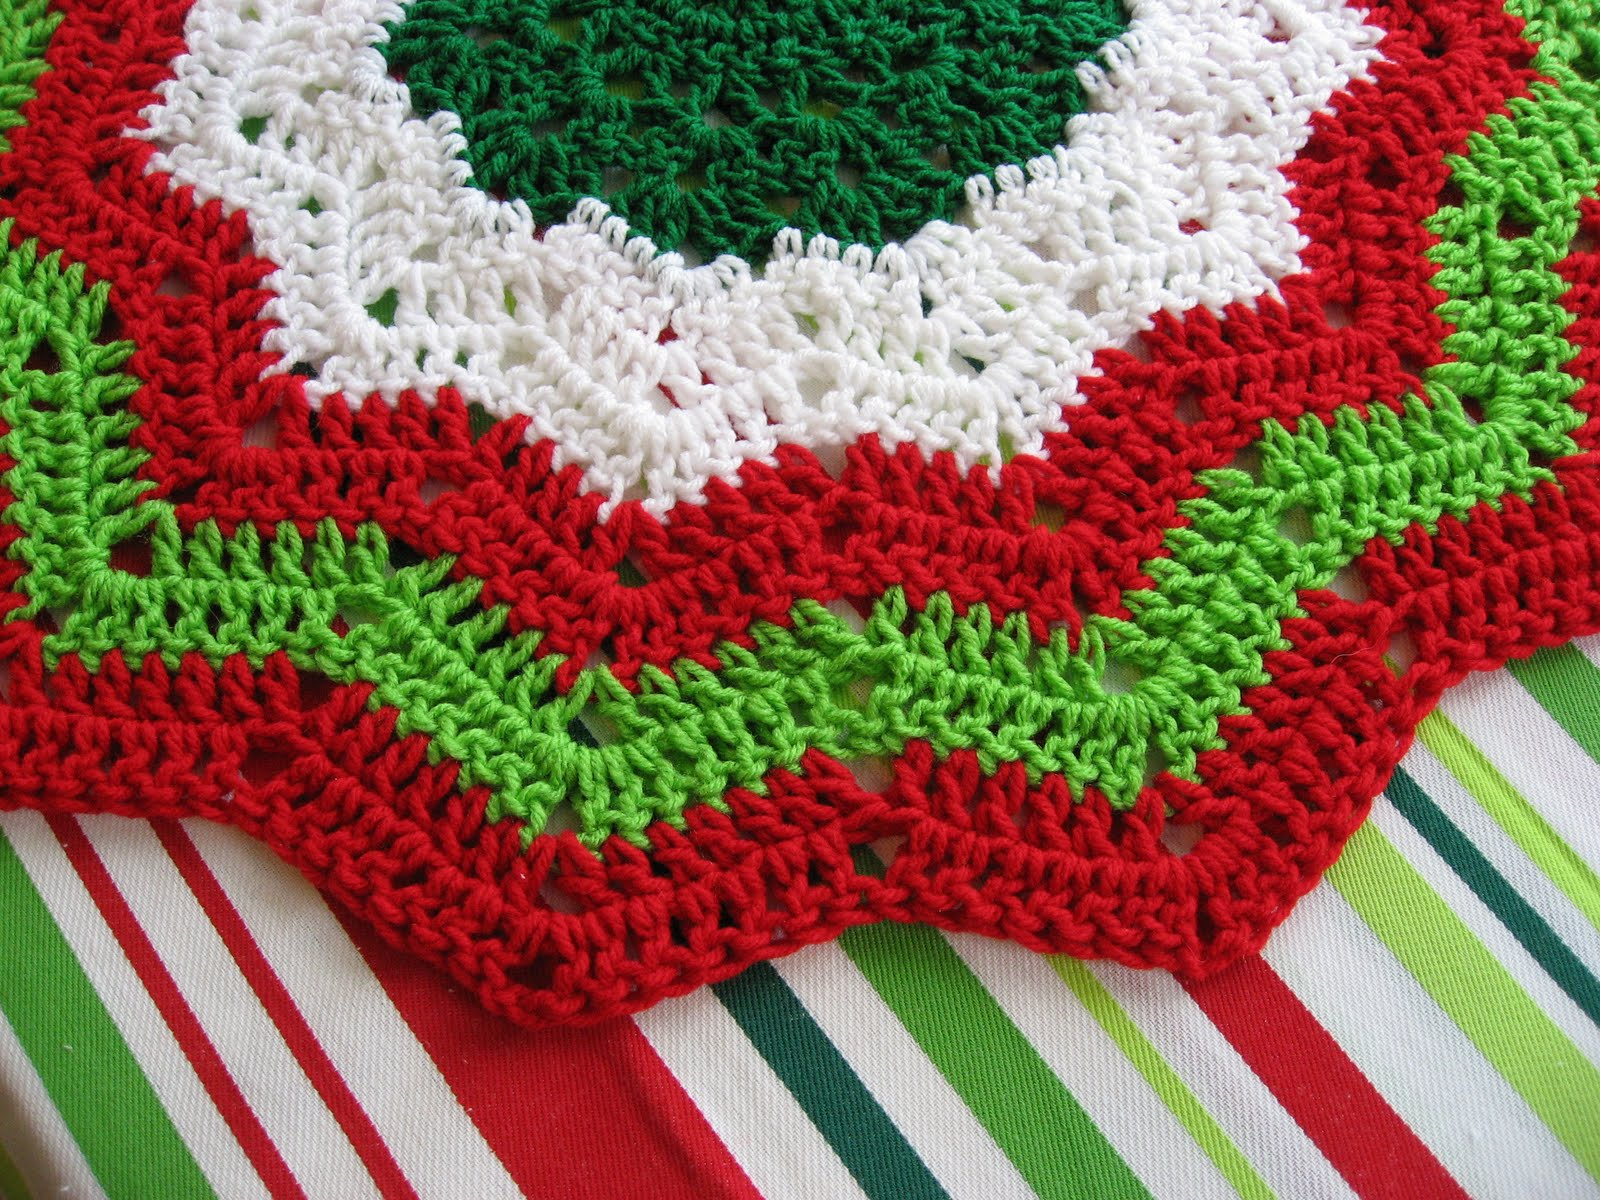 Crochet Patterns Xmas : Crochet Pattern Central - Free Afghan Crochet Pattern Link Directory